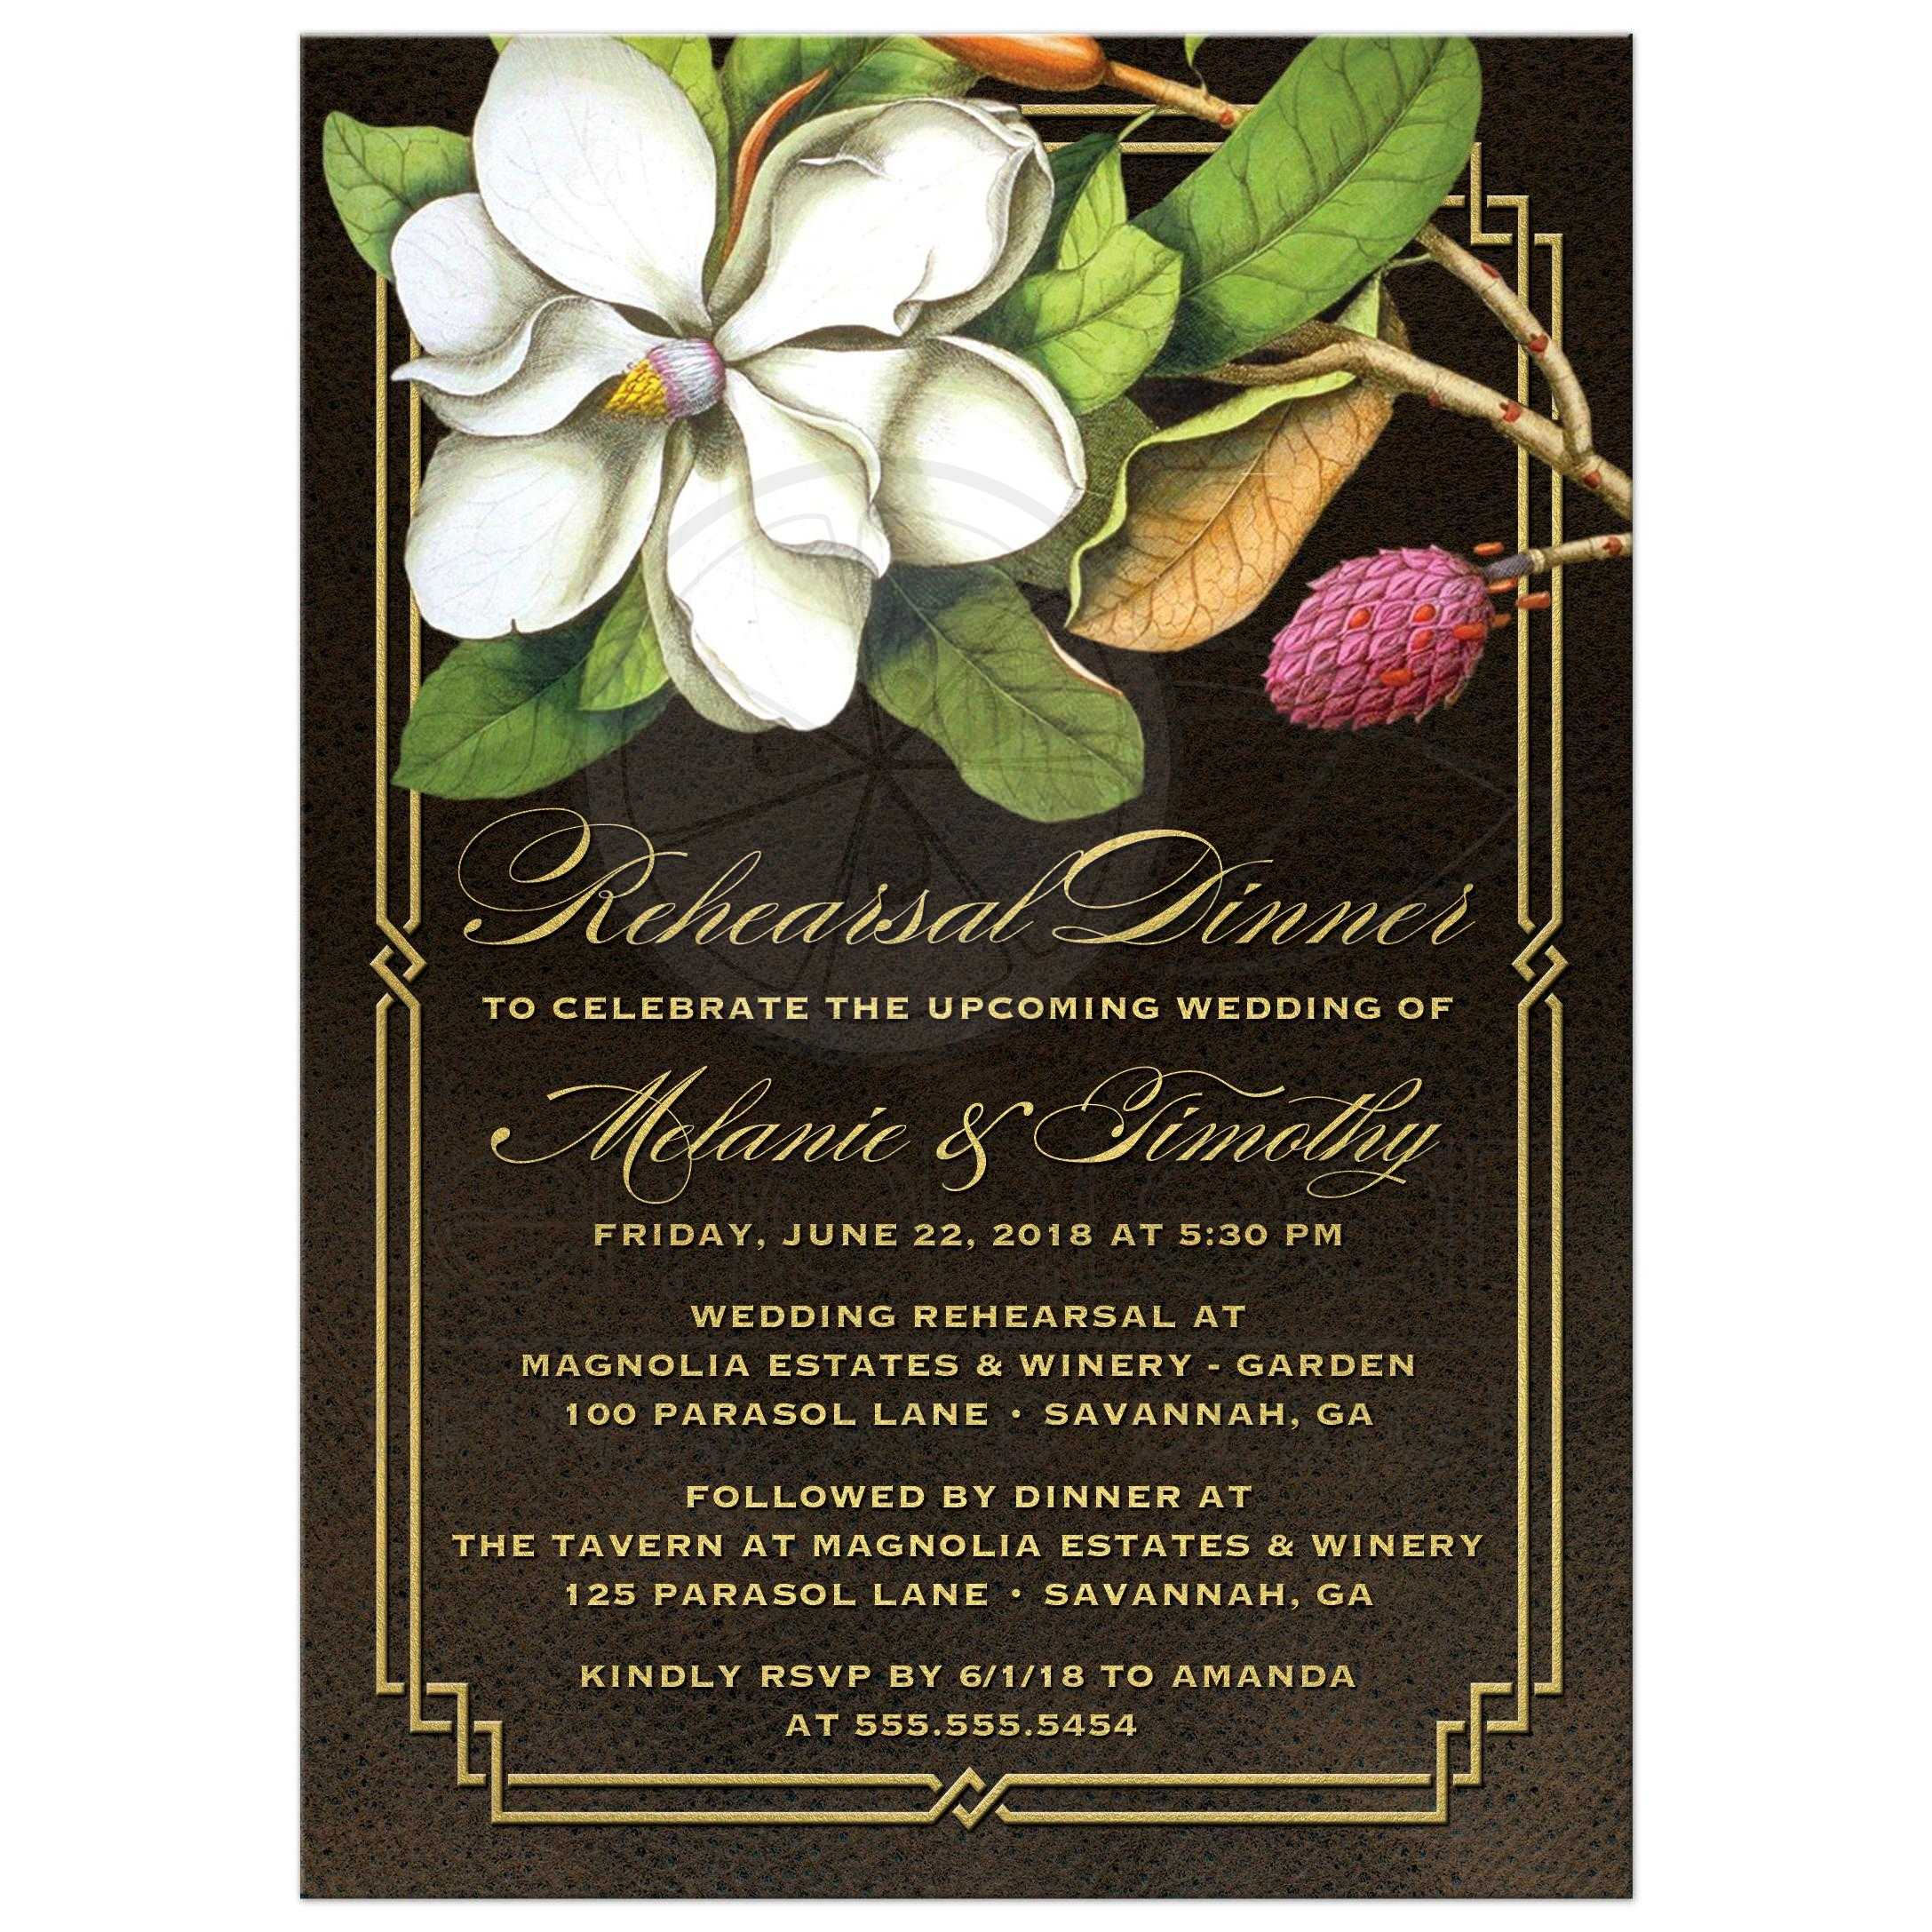 Wedding Rehearsal Dinner Invitations - Elegant Vintage Southern Magnolia